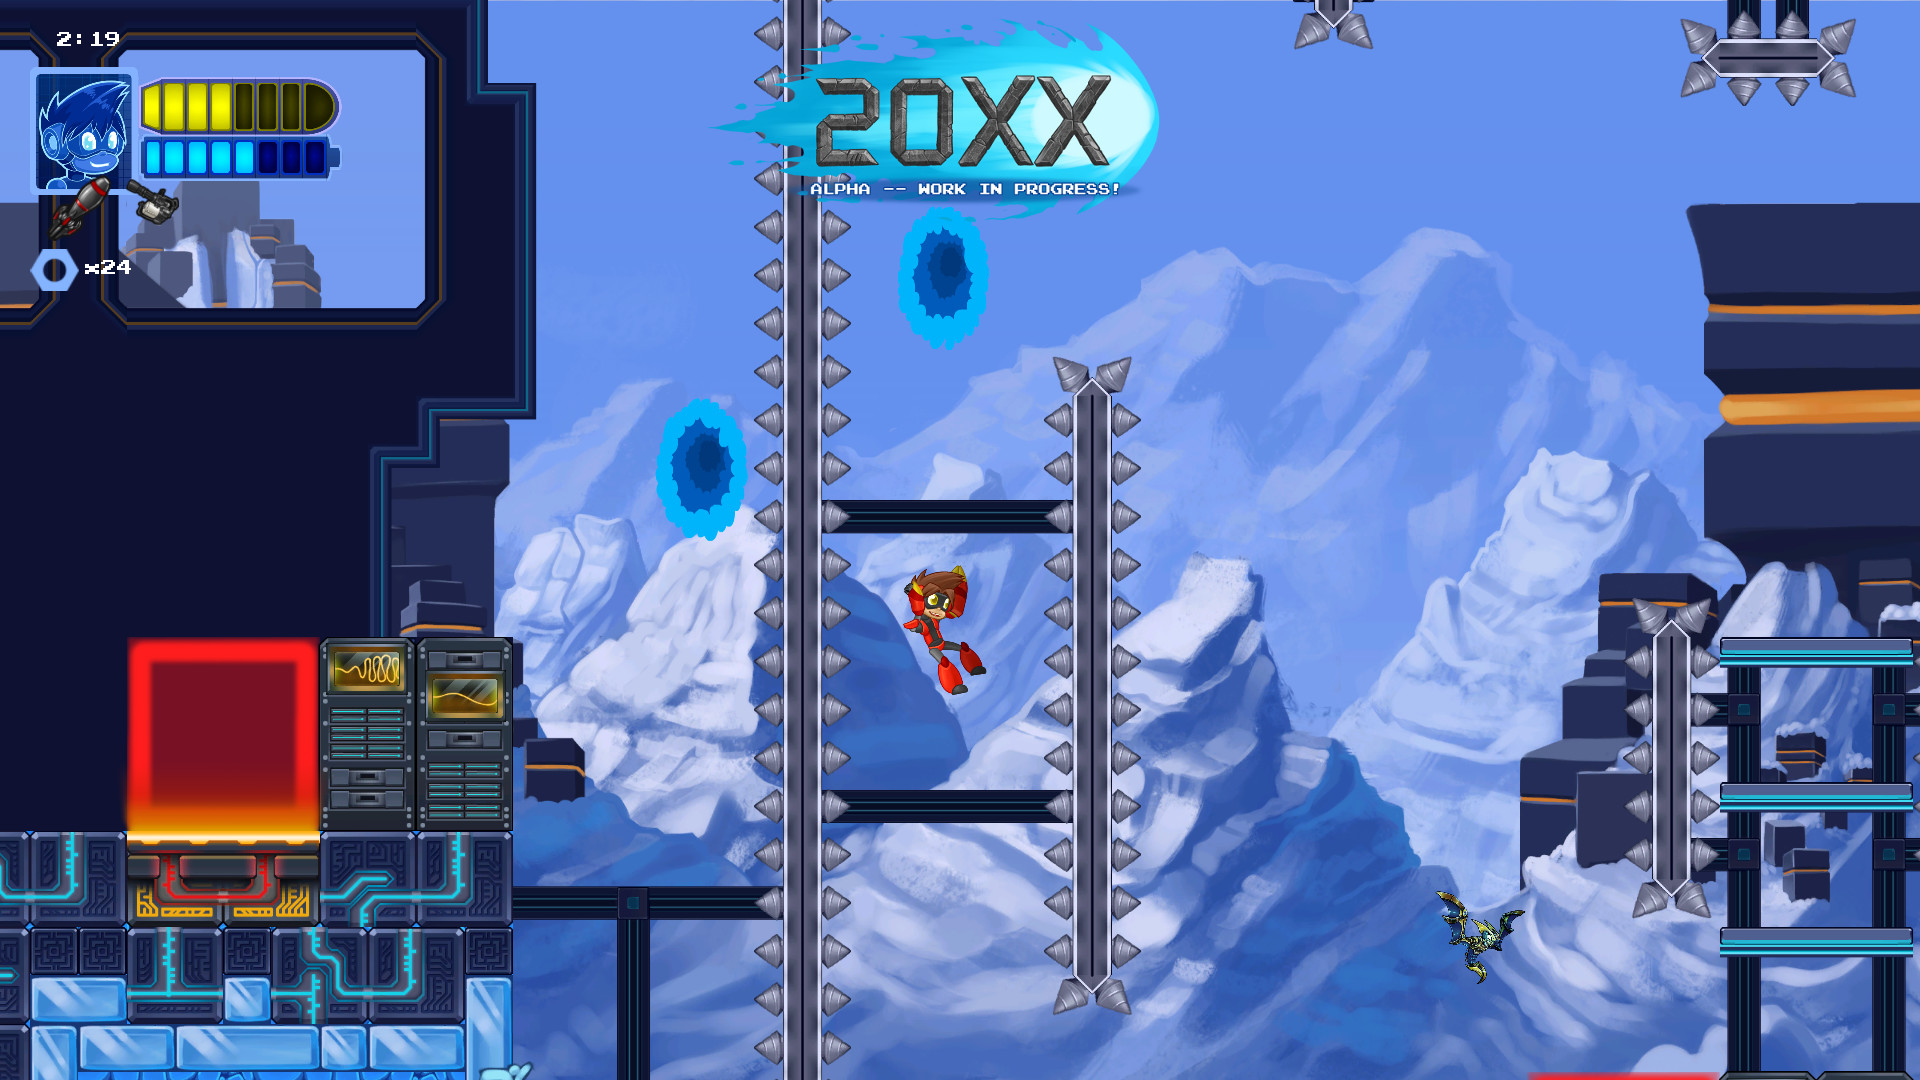 20XX is a coop roguelike take on Mega Man  Polygon